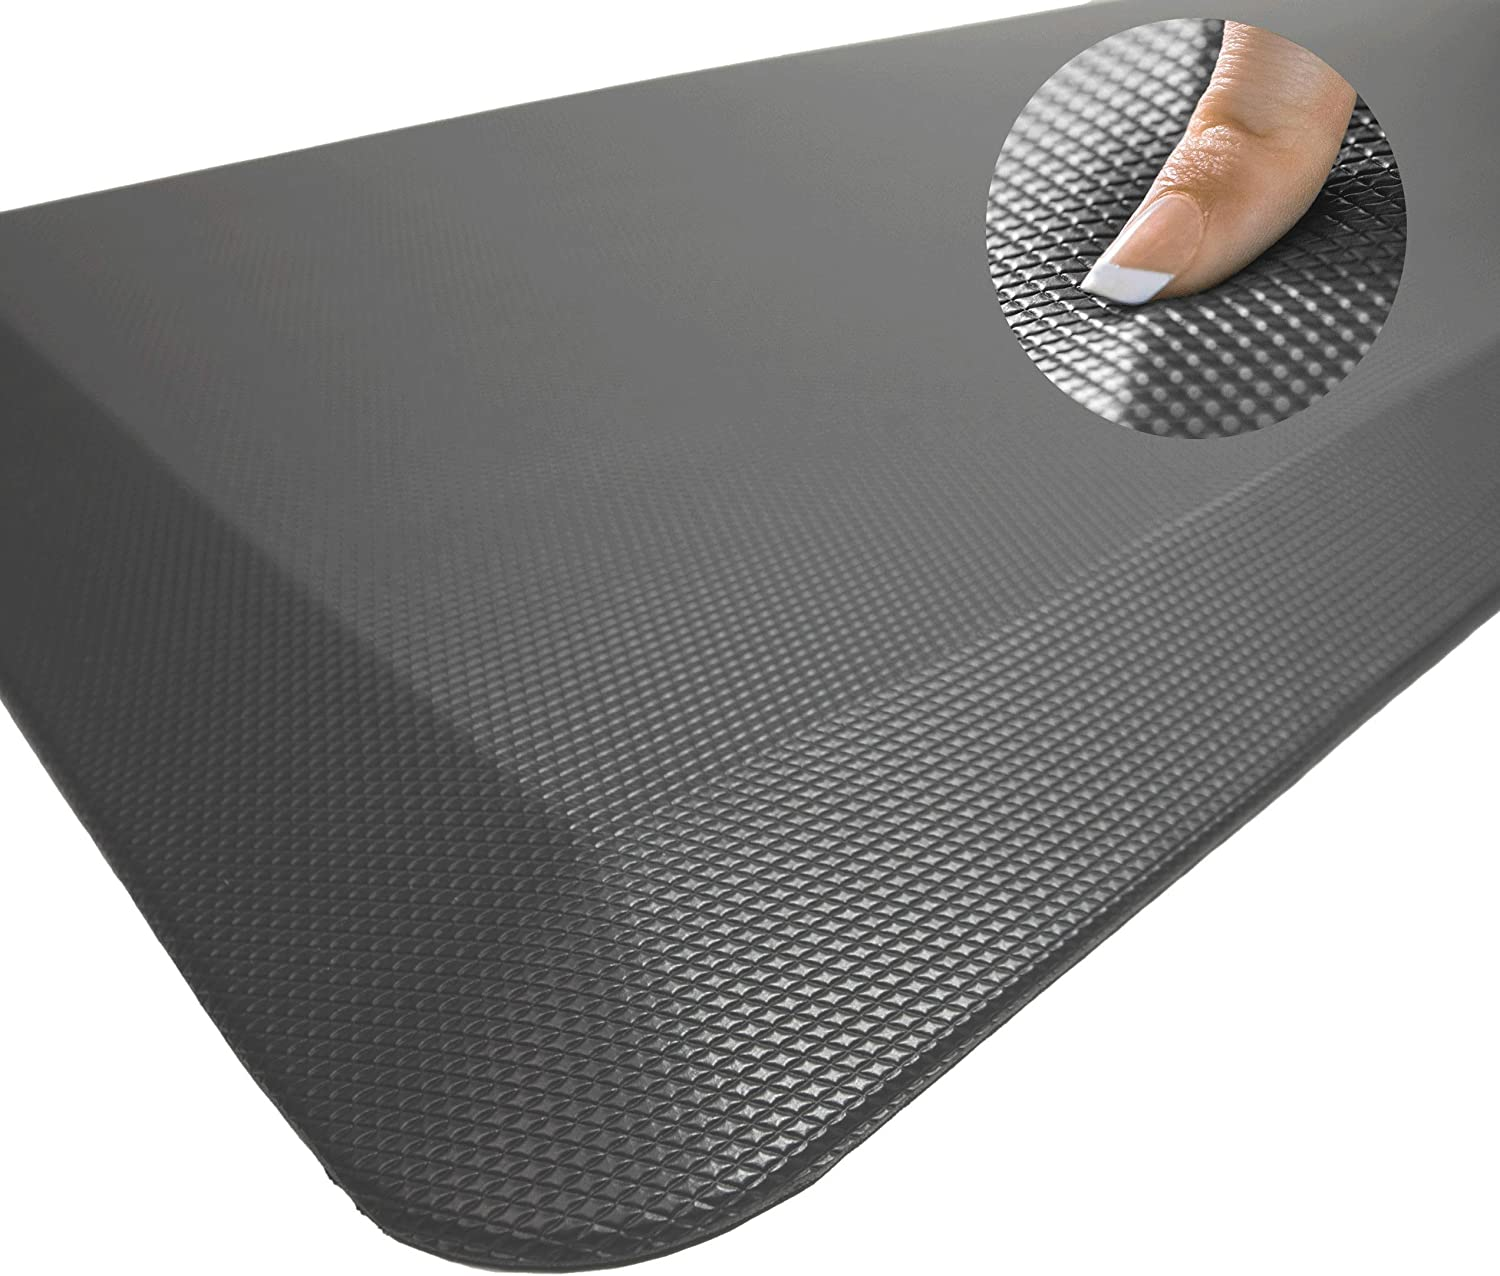 Sky Solutions Anti Fatigue Mat - Cushioned Comfort Floor Mats For Kitchen, Office & Garage - Padded Pad For Office - Non Slip Foam Cushion For Standing Desk (20x32x3/4-Inch, Gray): Kitchen & Dining